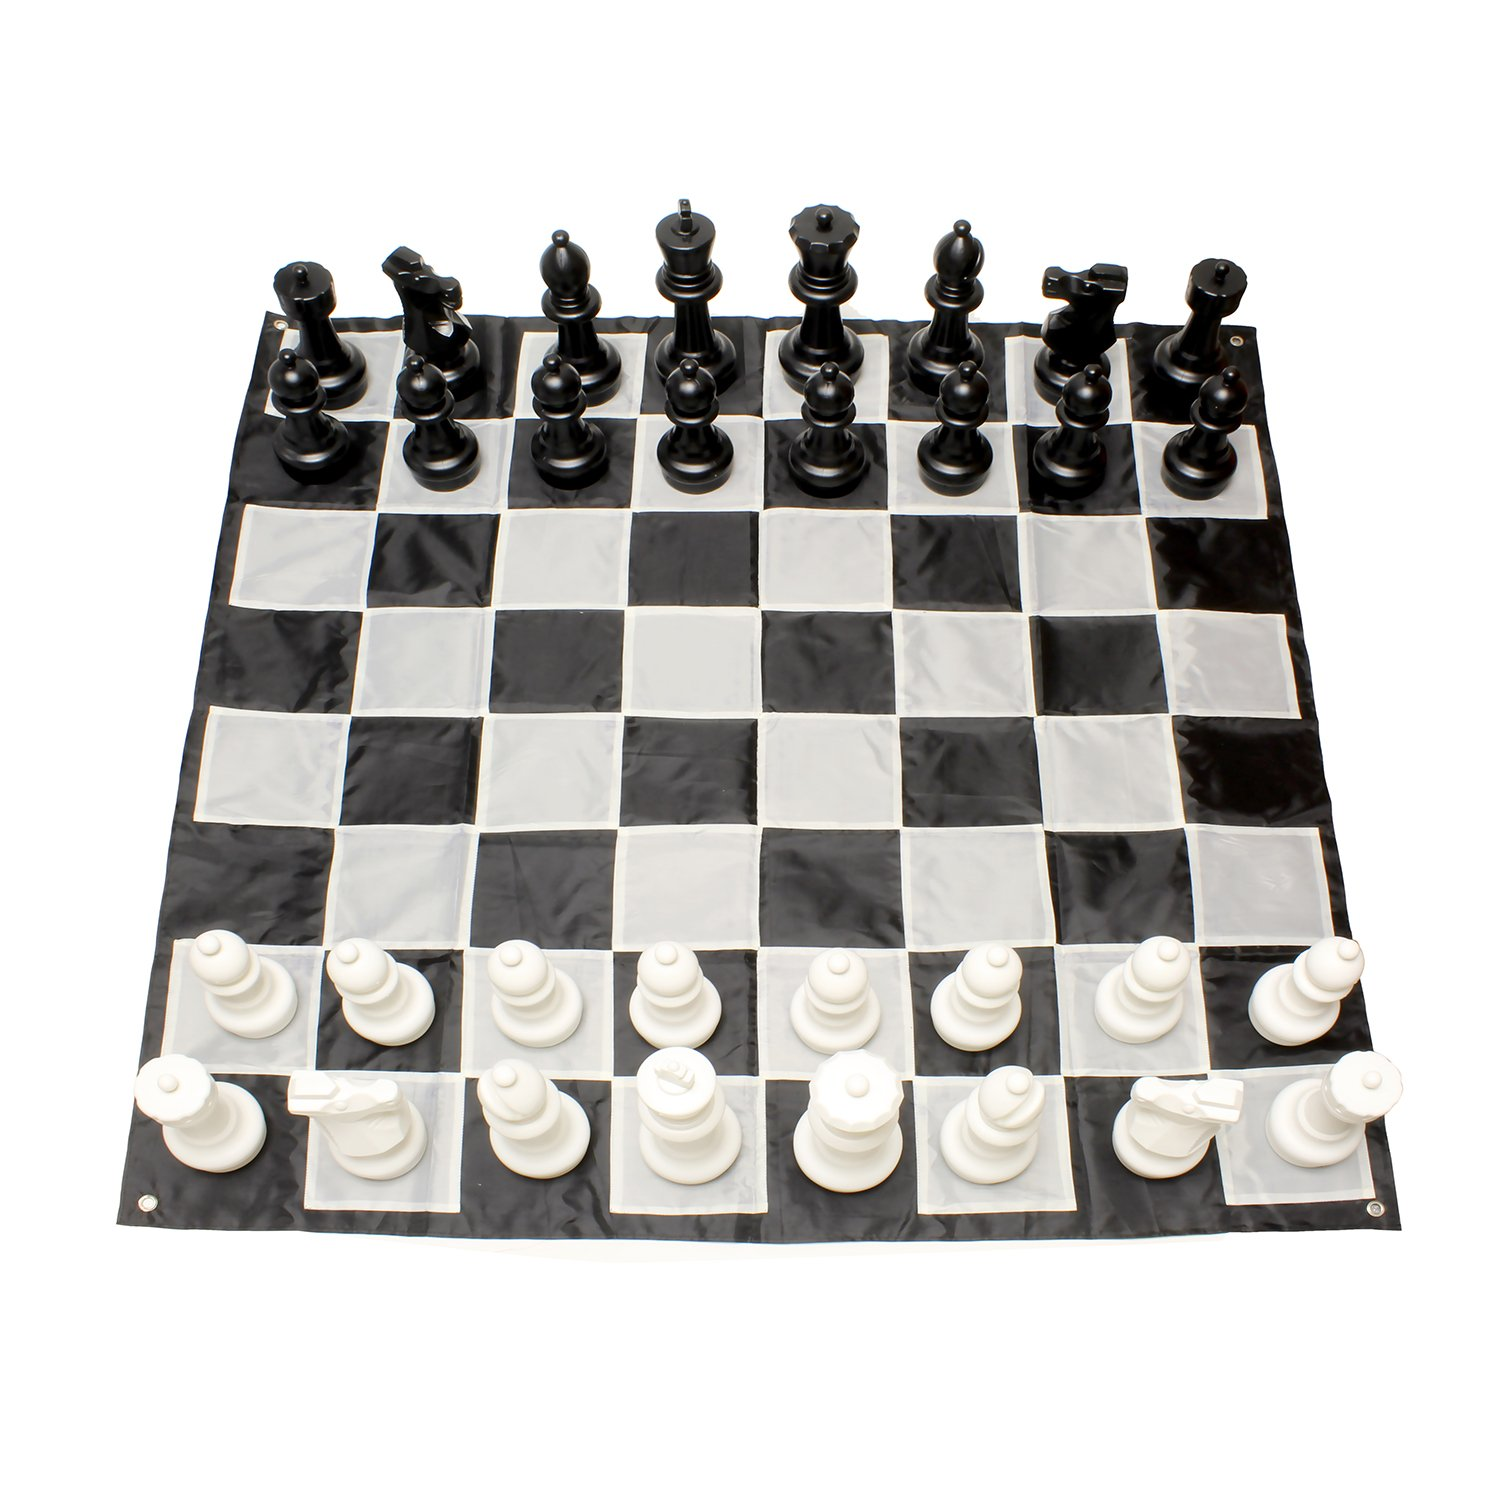 Get Out! | Giant Chess Set Outdoor Games for Family Lawn Games – Large Chess Pieces & 5x5' Ft Giant Chess Board